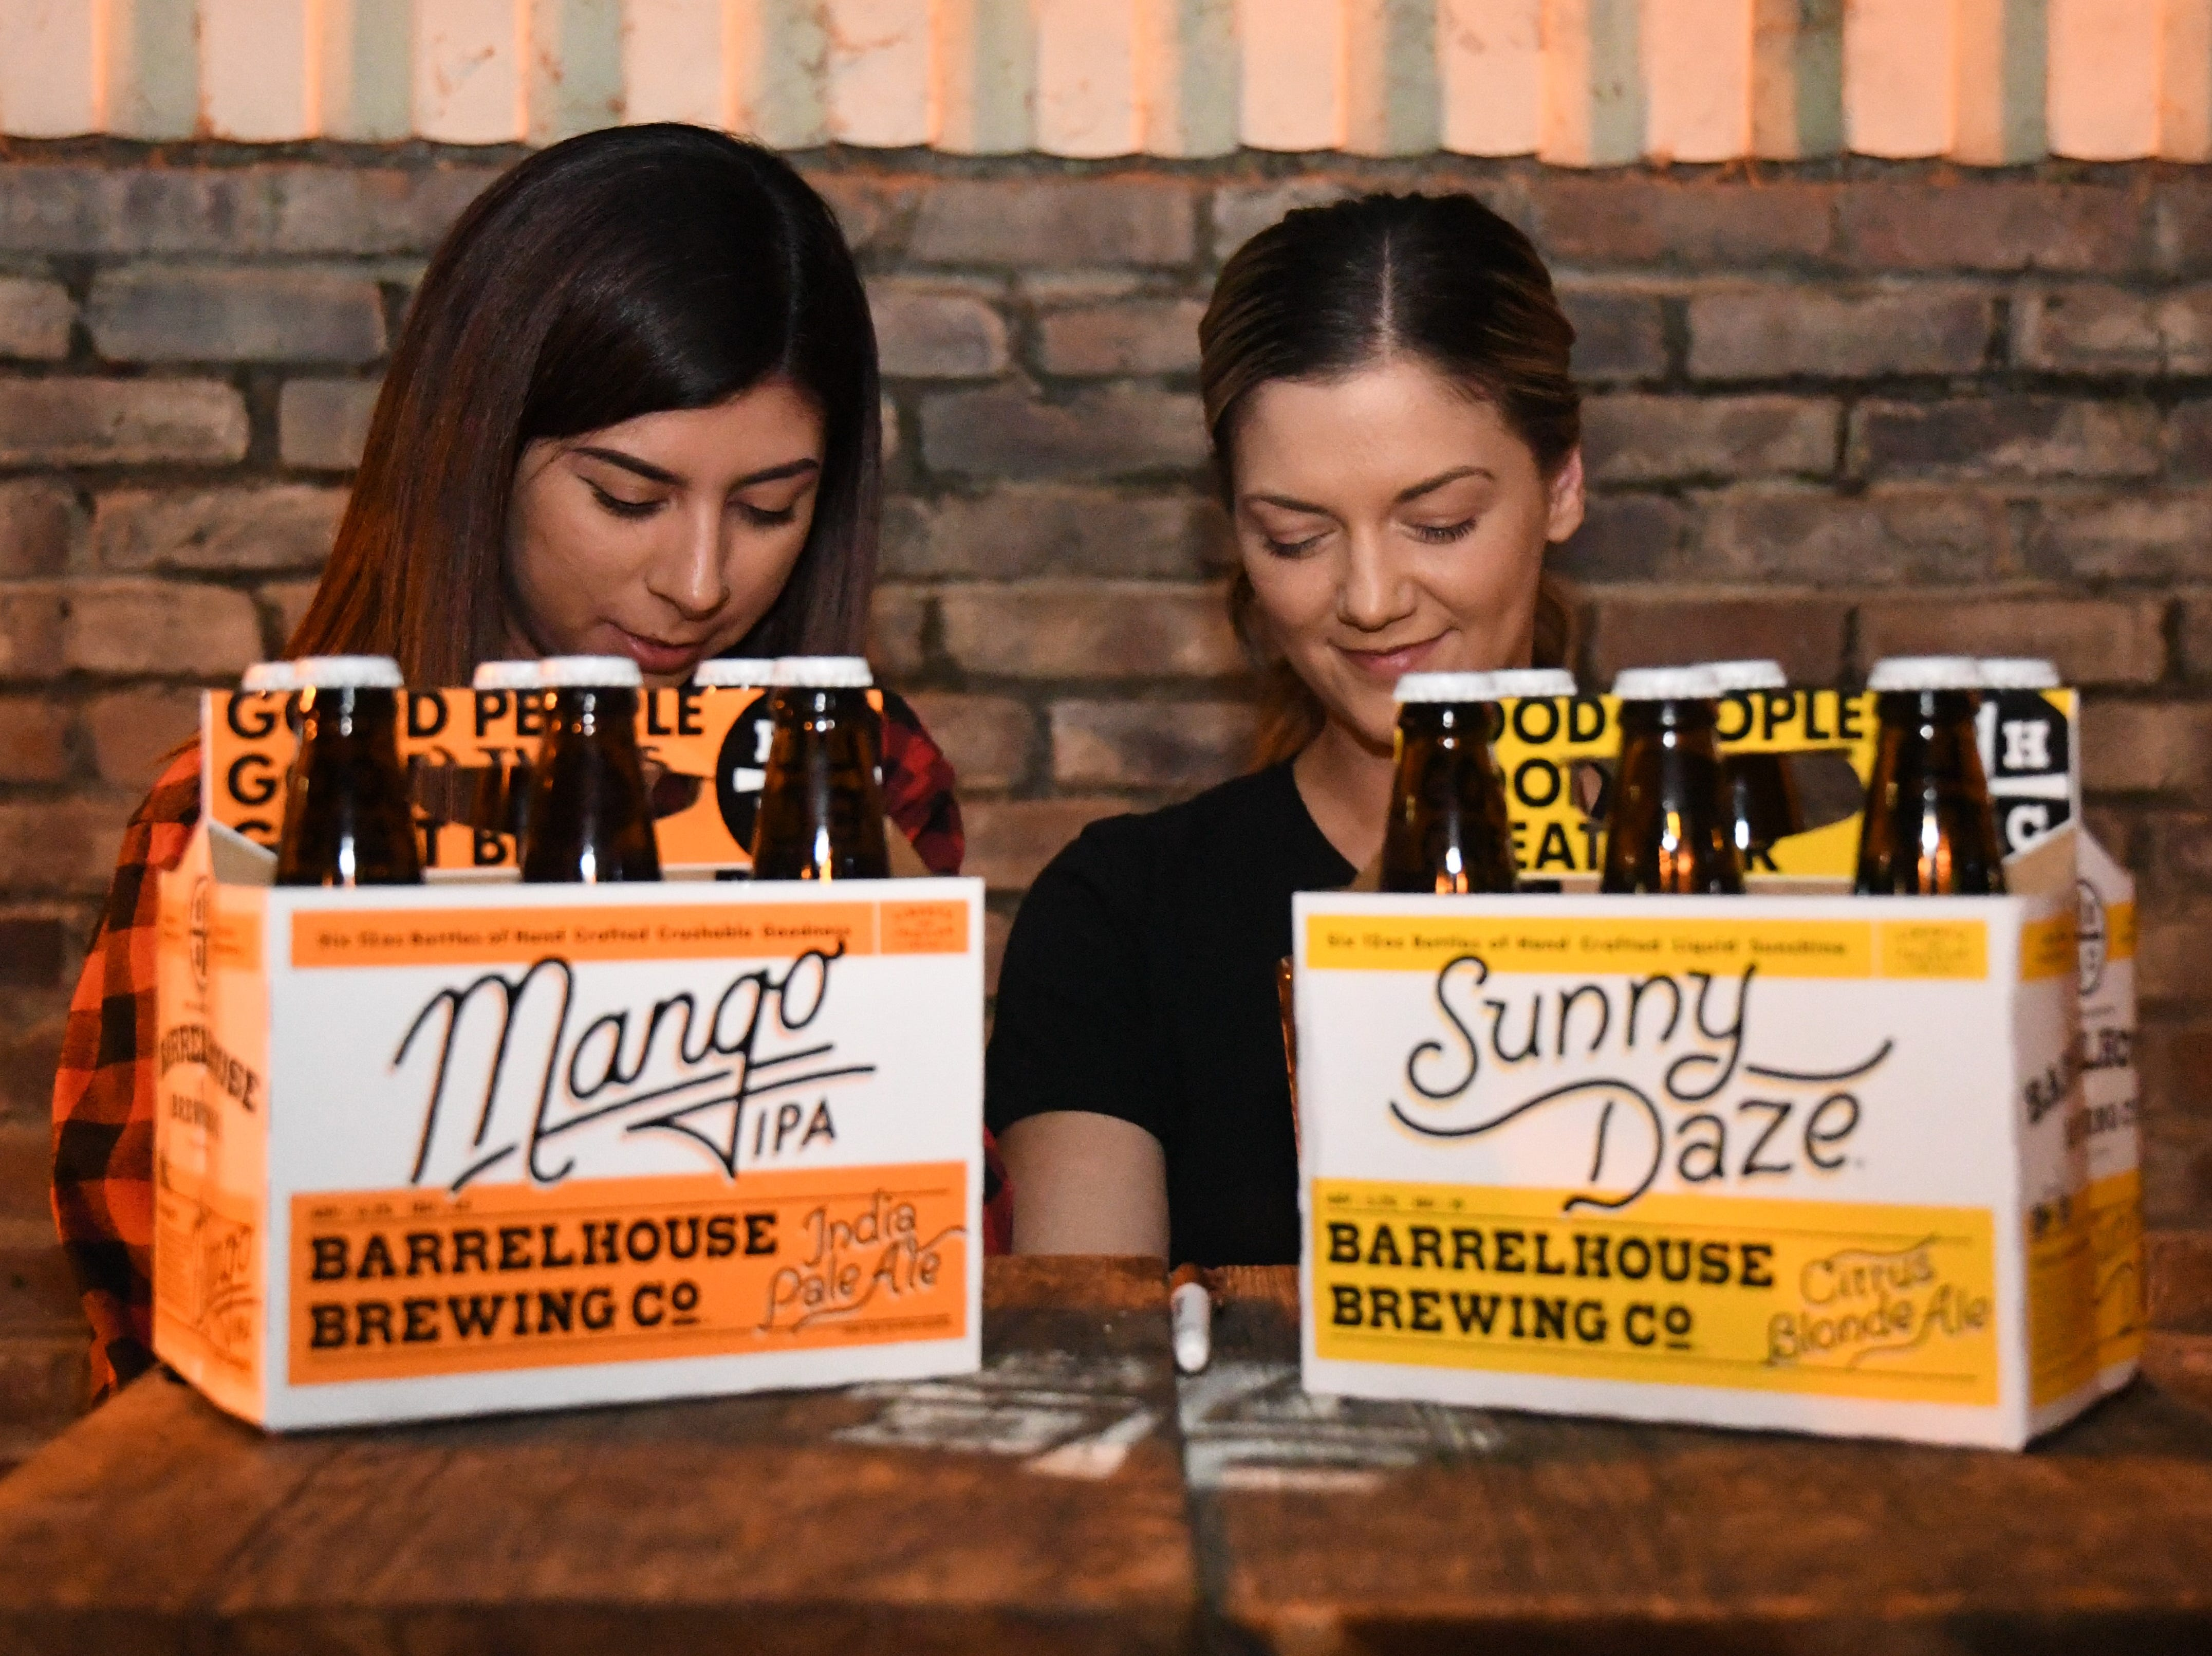 Barrelhouse Brewing Co. refresh event-goers with their Sunny Daze Blonde Ale and Mango IPA.